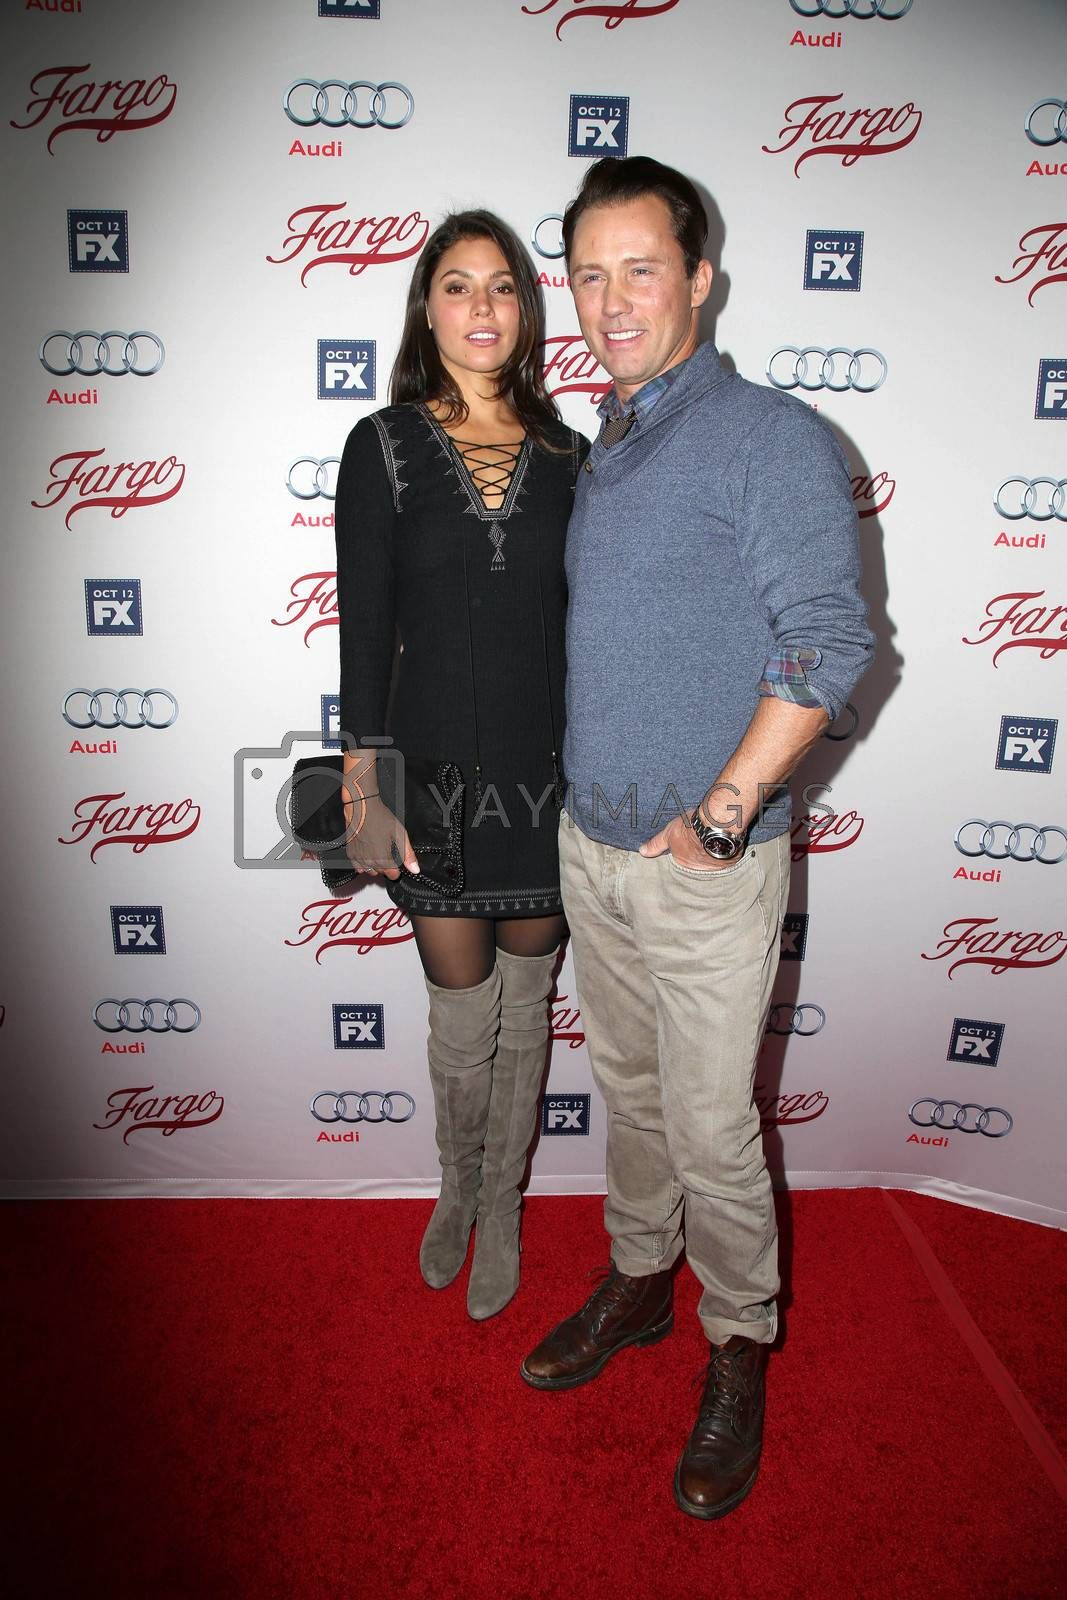 """Jeffrey Donovan and wife at the """"Fargo"""" Season 2 Premiere Screening, ArcLight, Hollywood, CA 10-07-15/ImageCollect by ImageCollect"""